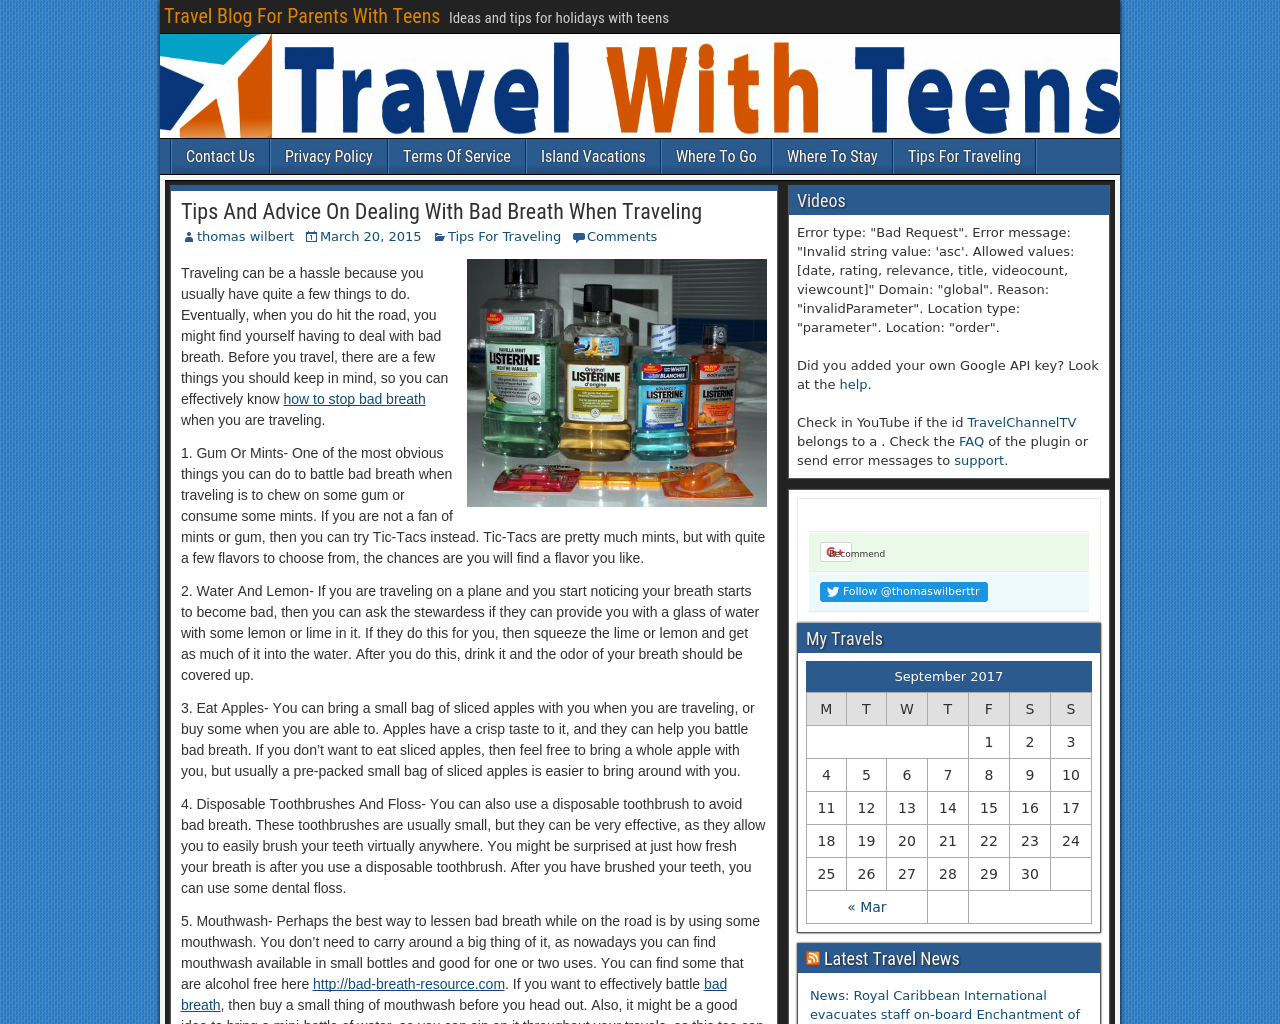 Travel-With-Teens-And-Tweens-Advertising-Reviews-Pricing